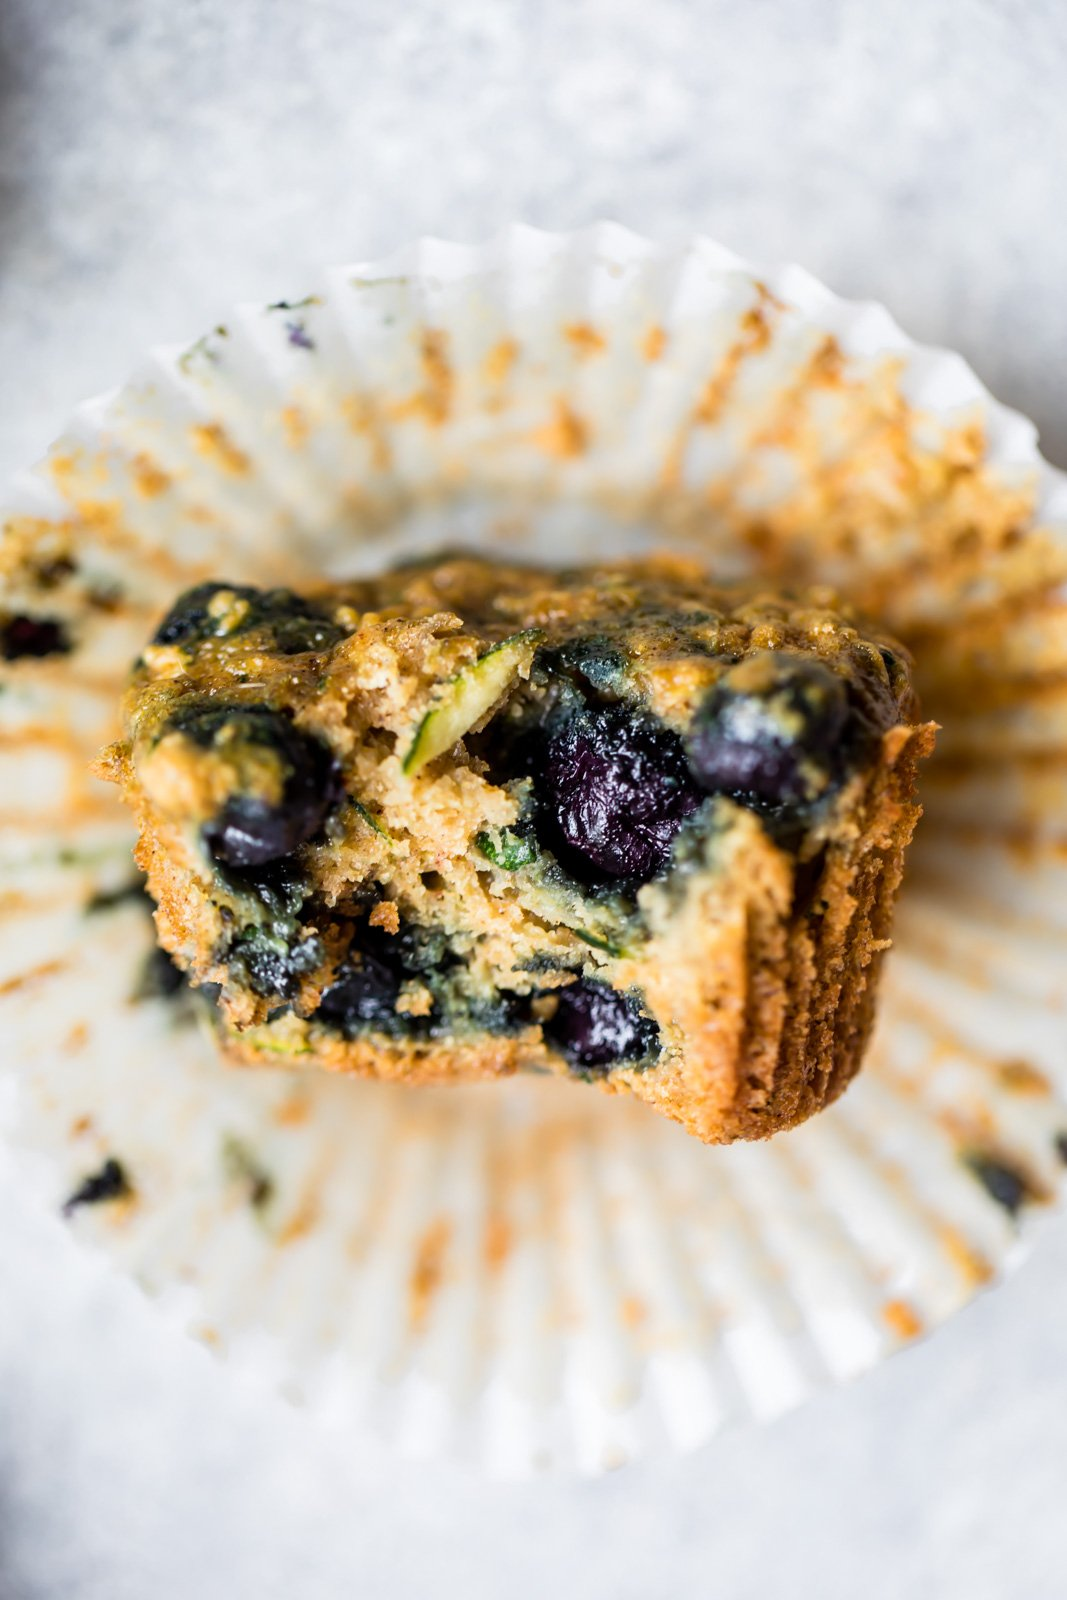 Healthy blueberry zucchini muffin with a bite taken out